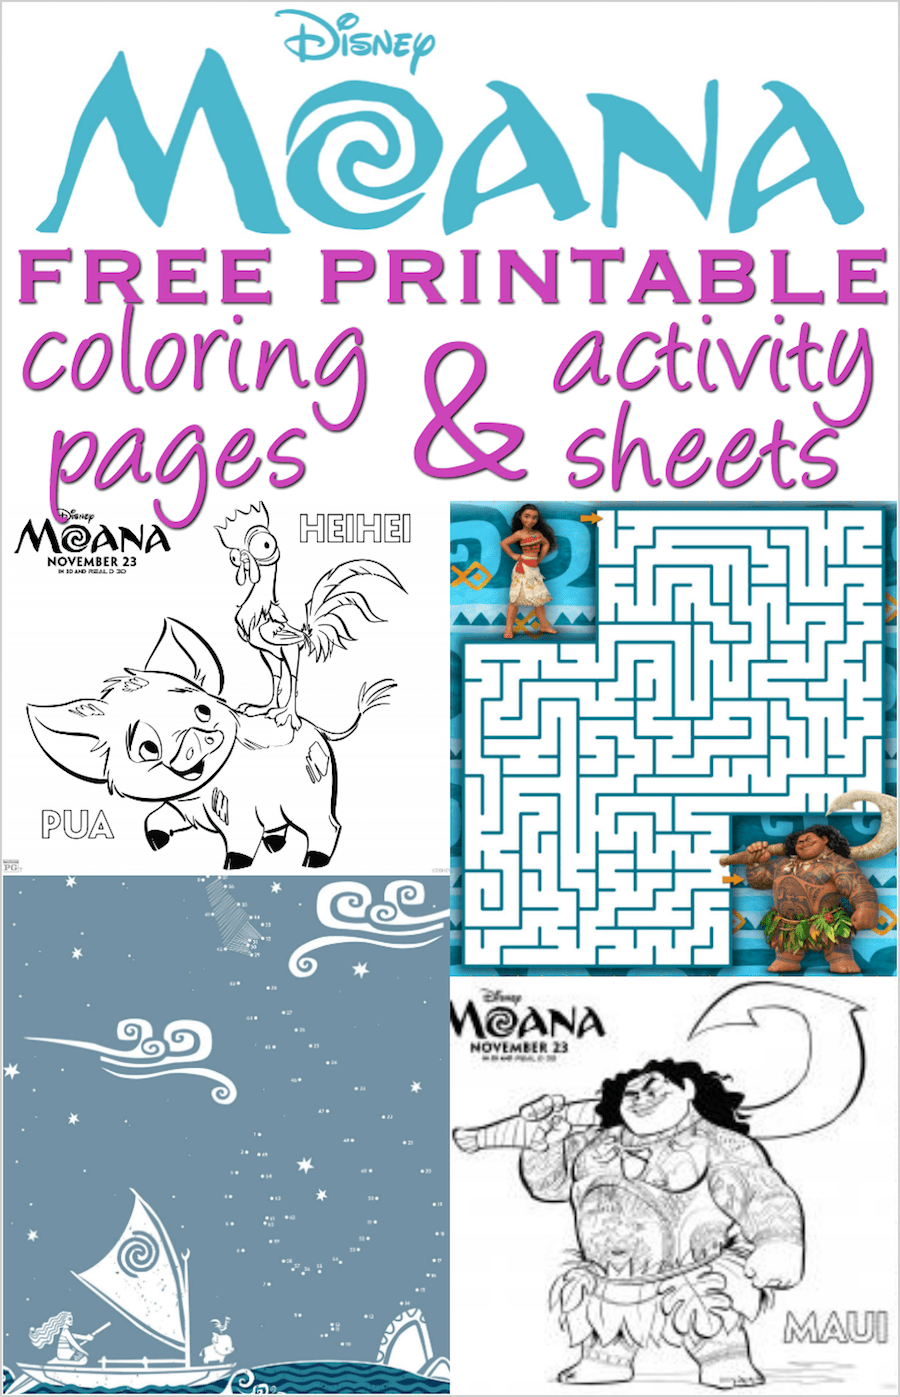 Moana Coloring Pages And Activity Sheets Over 30 Free Disney